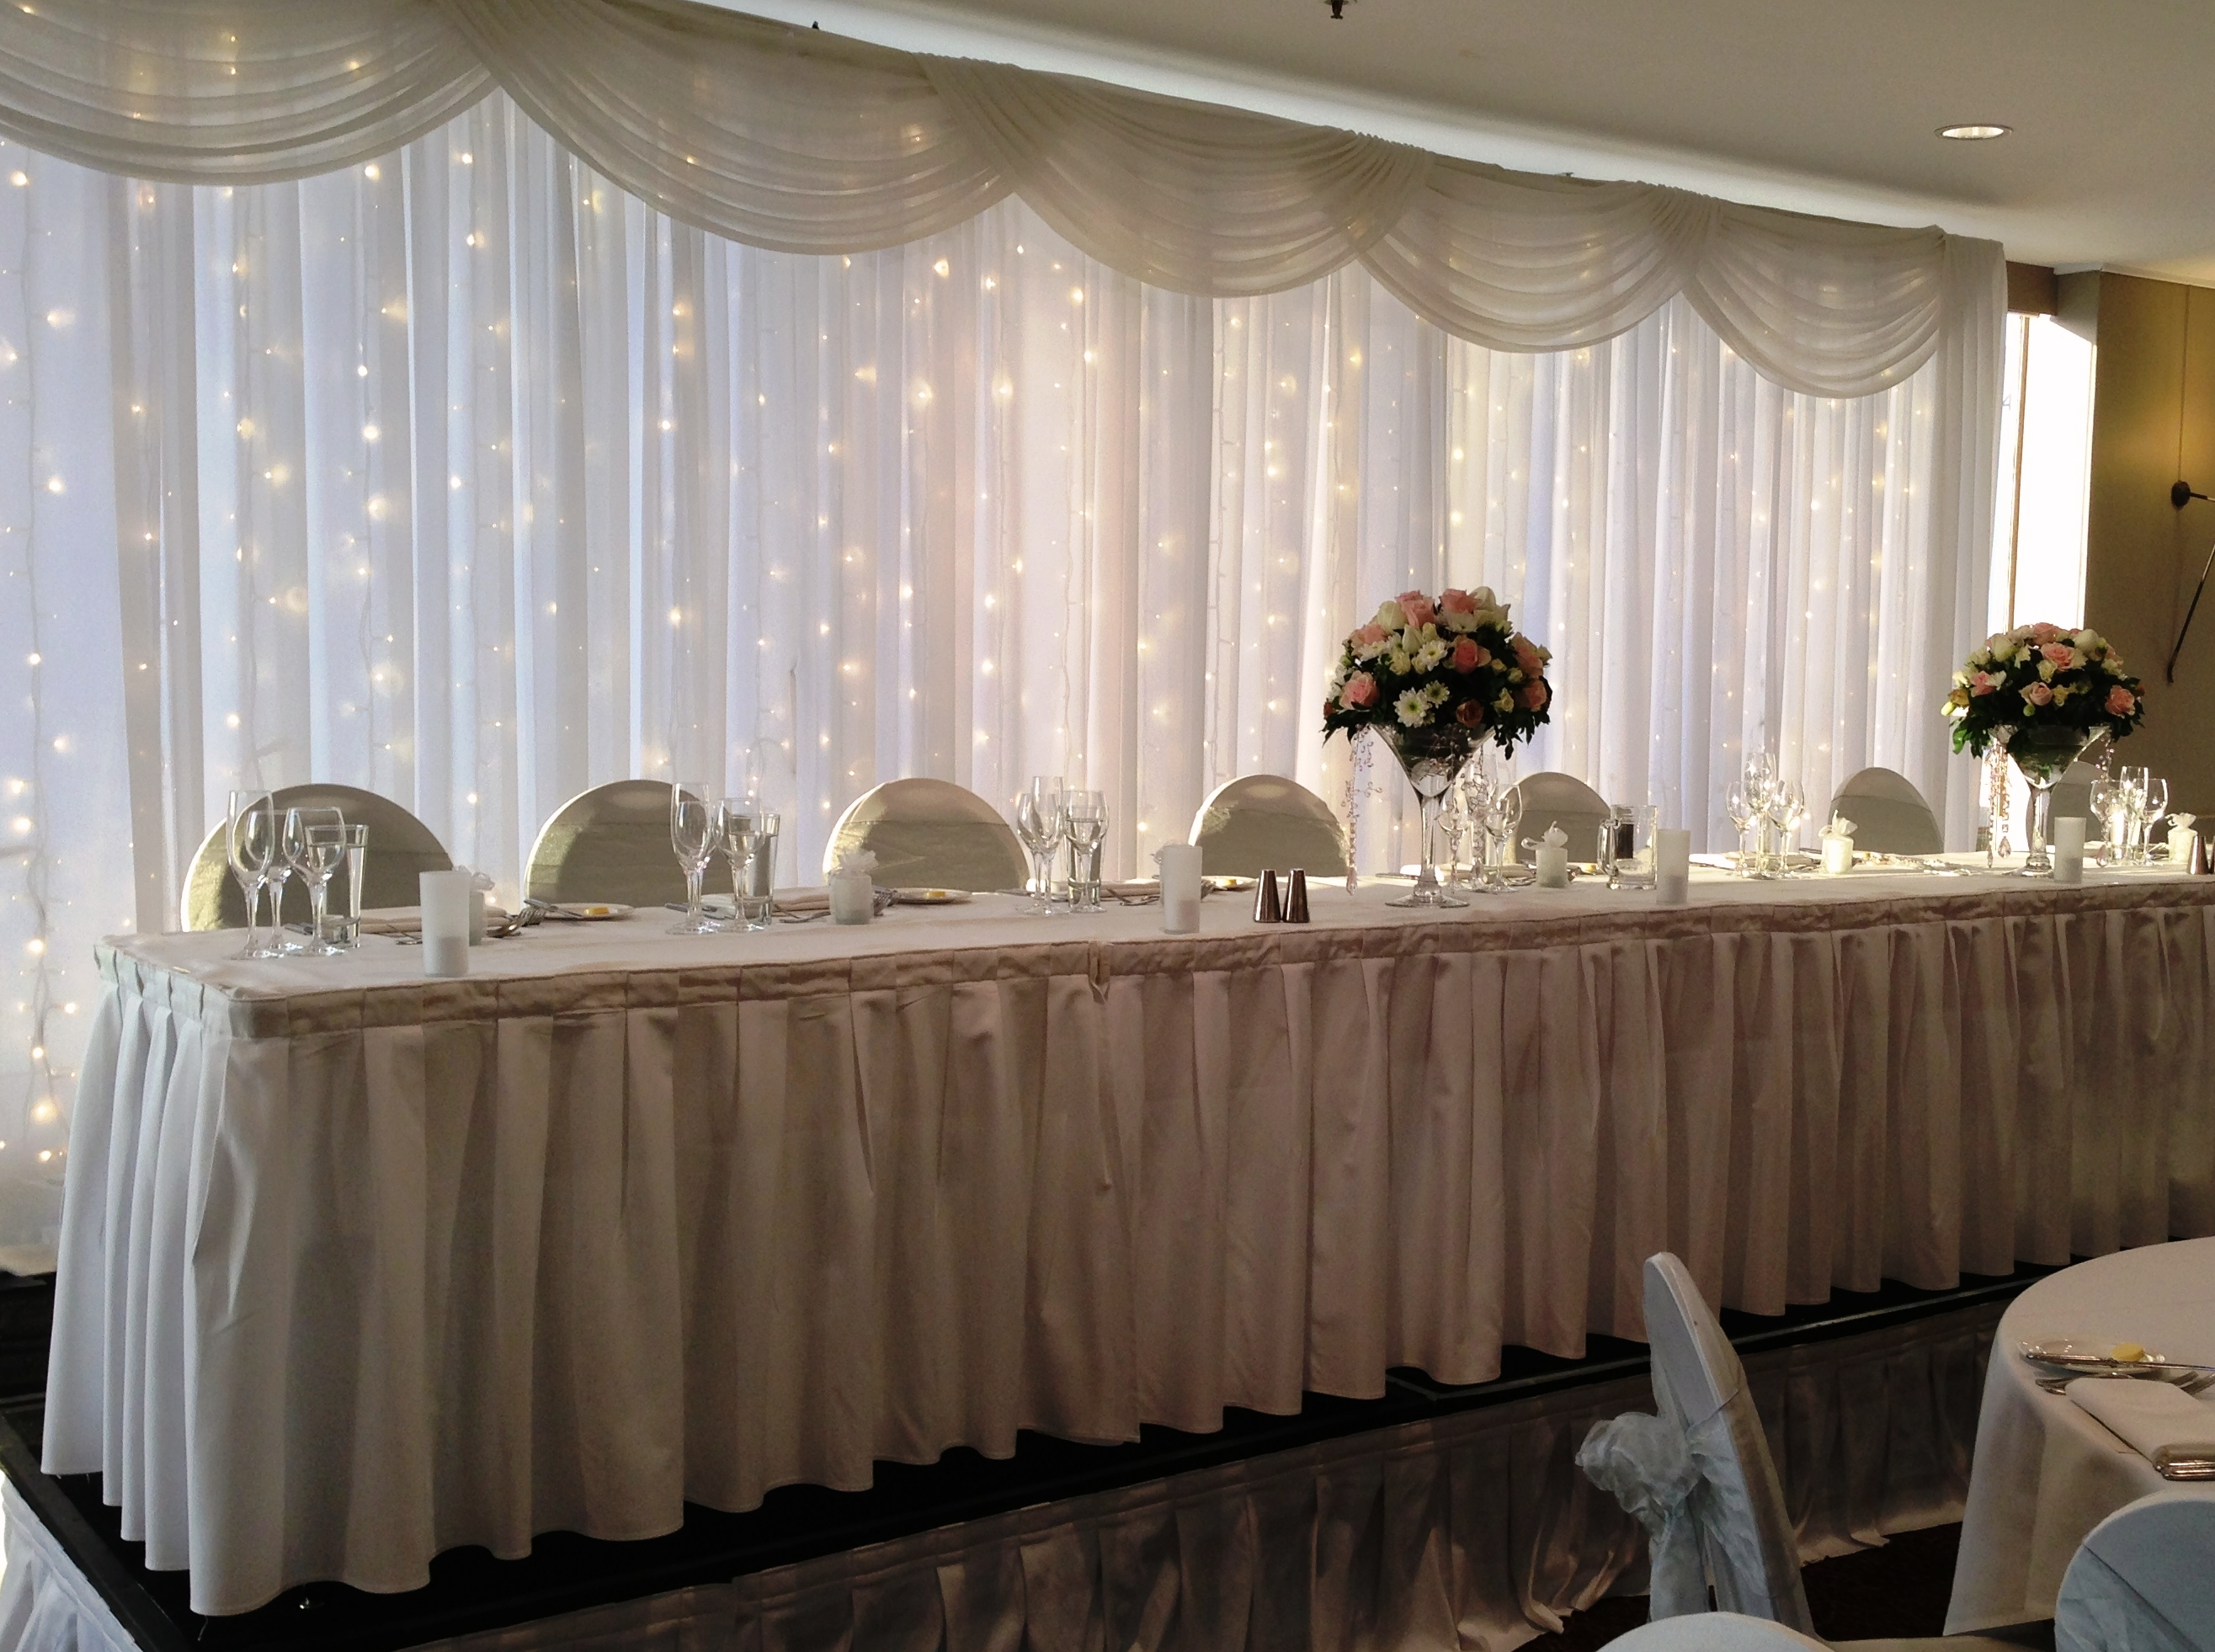 Centre Piece TravLin Lights Wedding Tables Backdrops